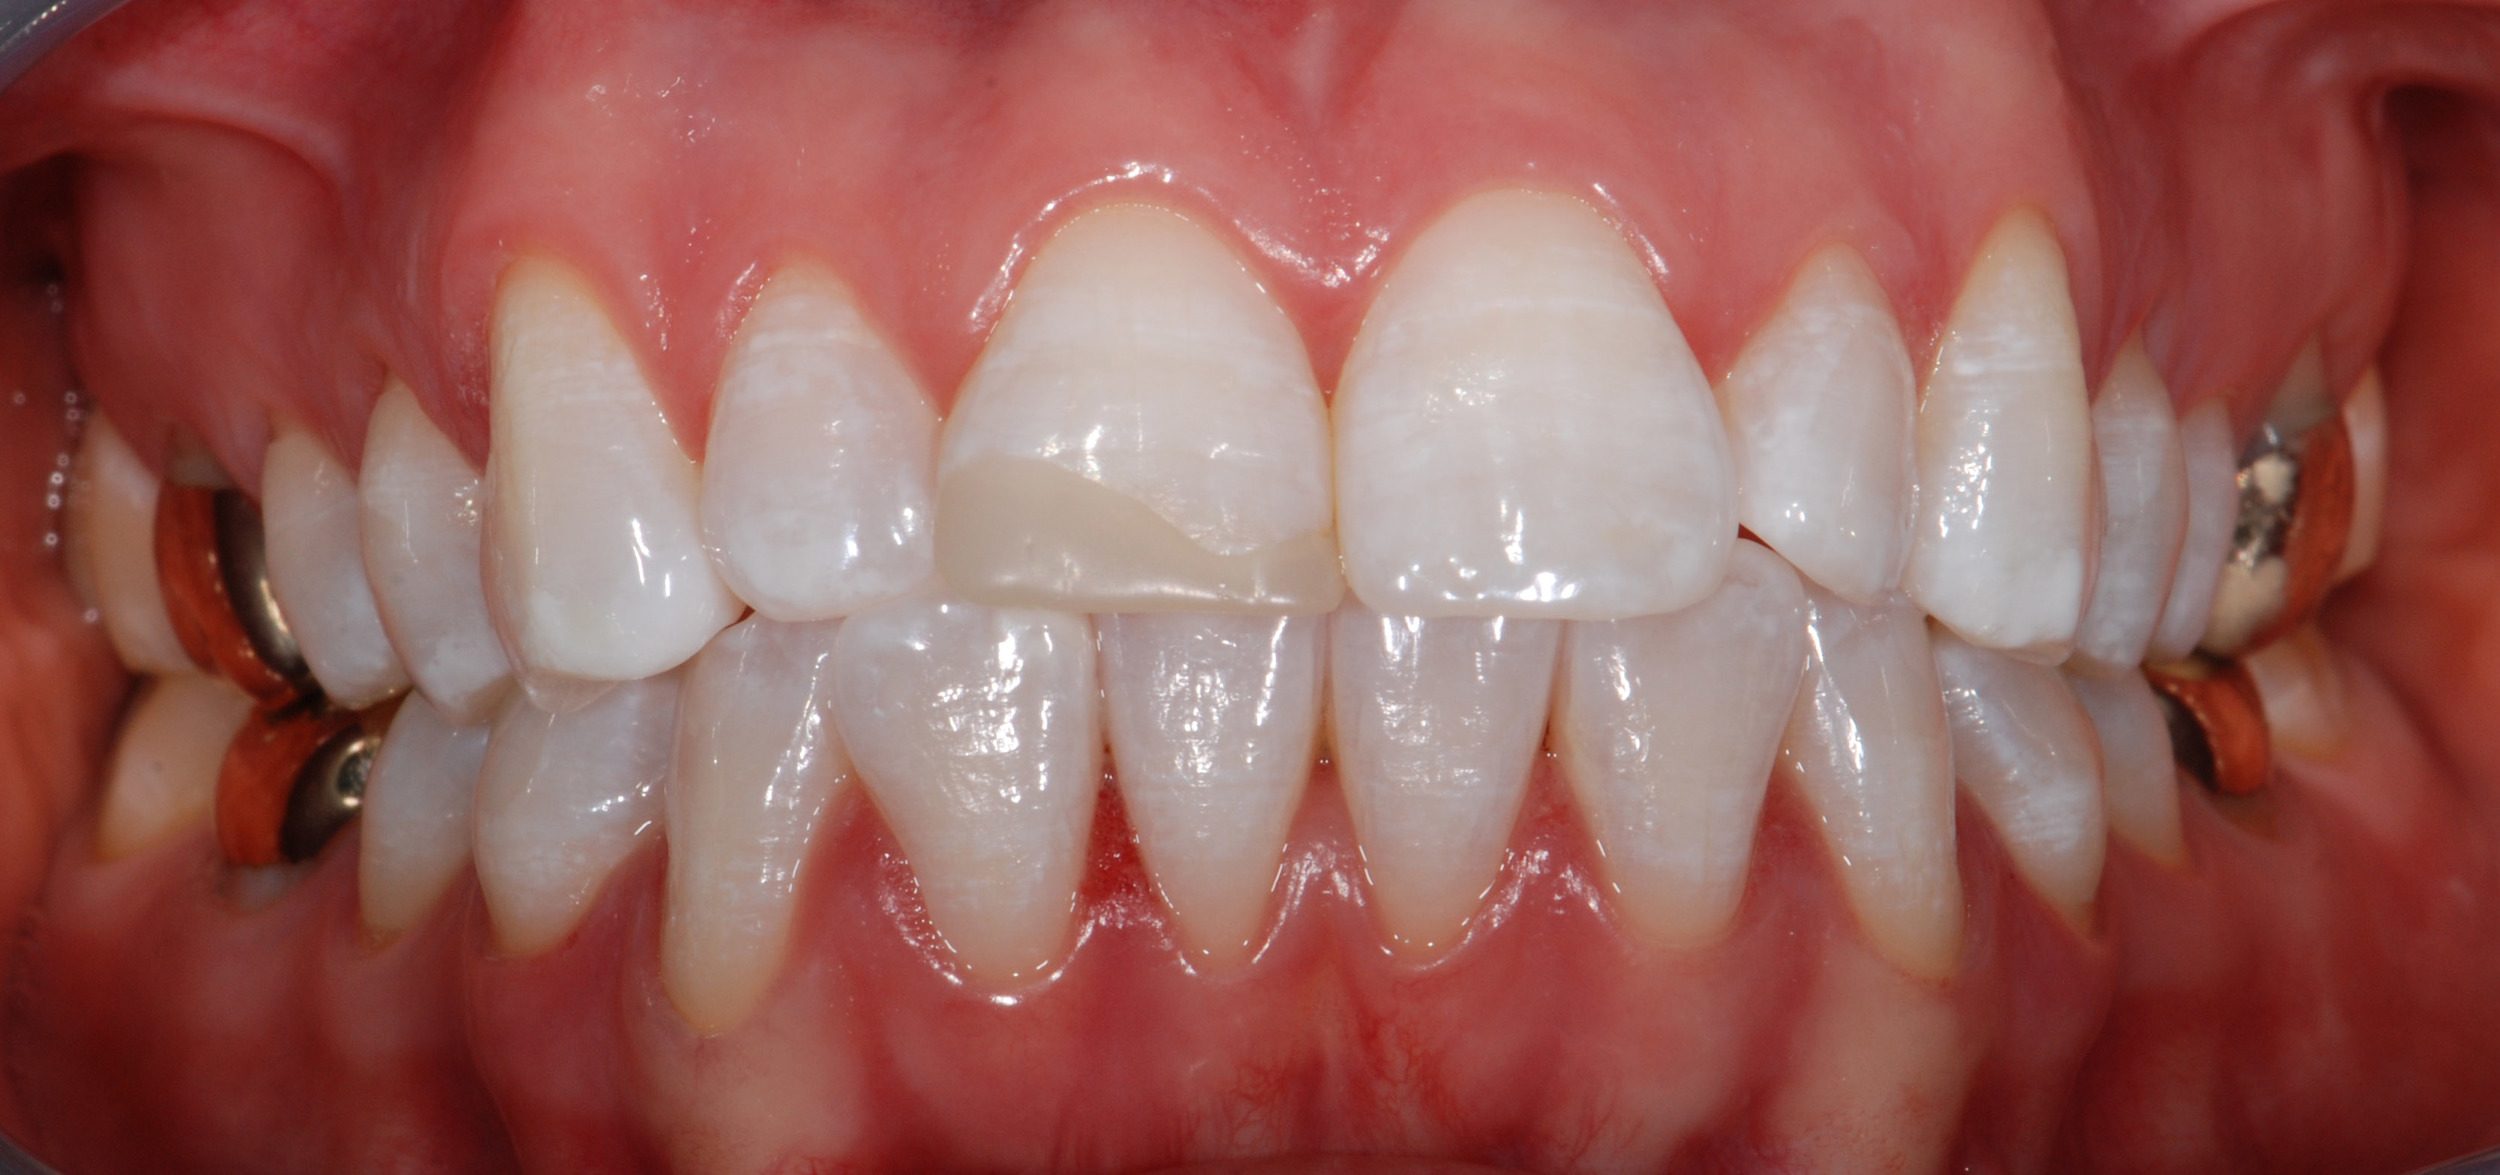 Post-Whitening - 4. Centric Occlusion.jpg